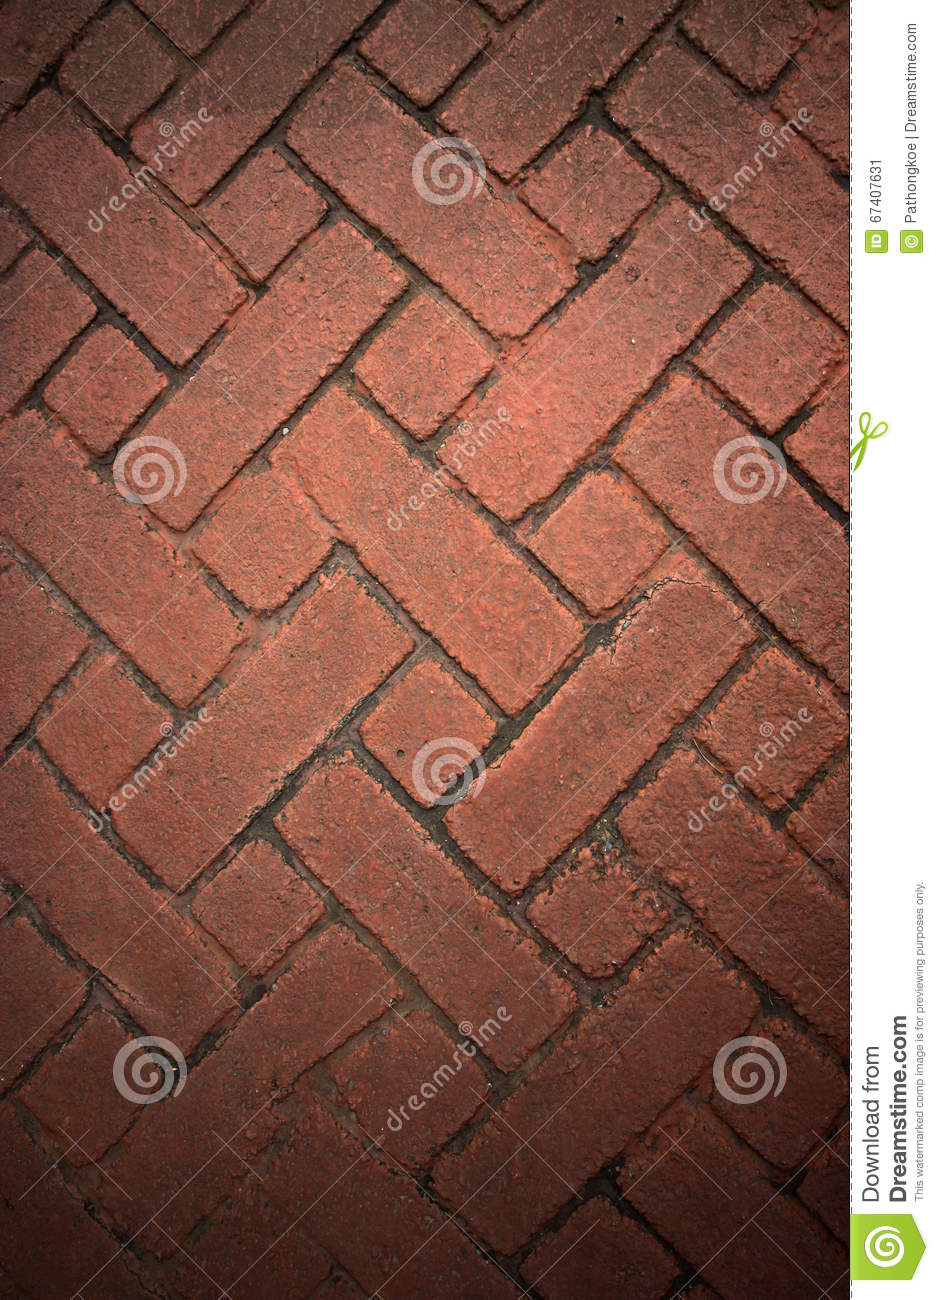 Concrete Cobble Street : Stone paving texture abstract old pavement background